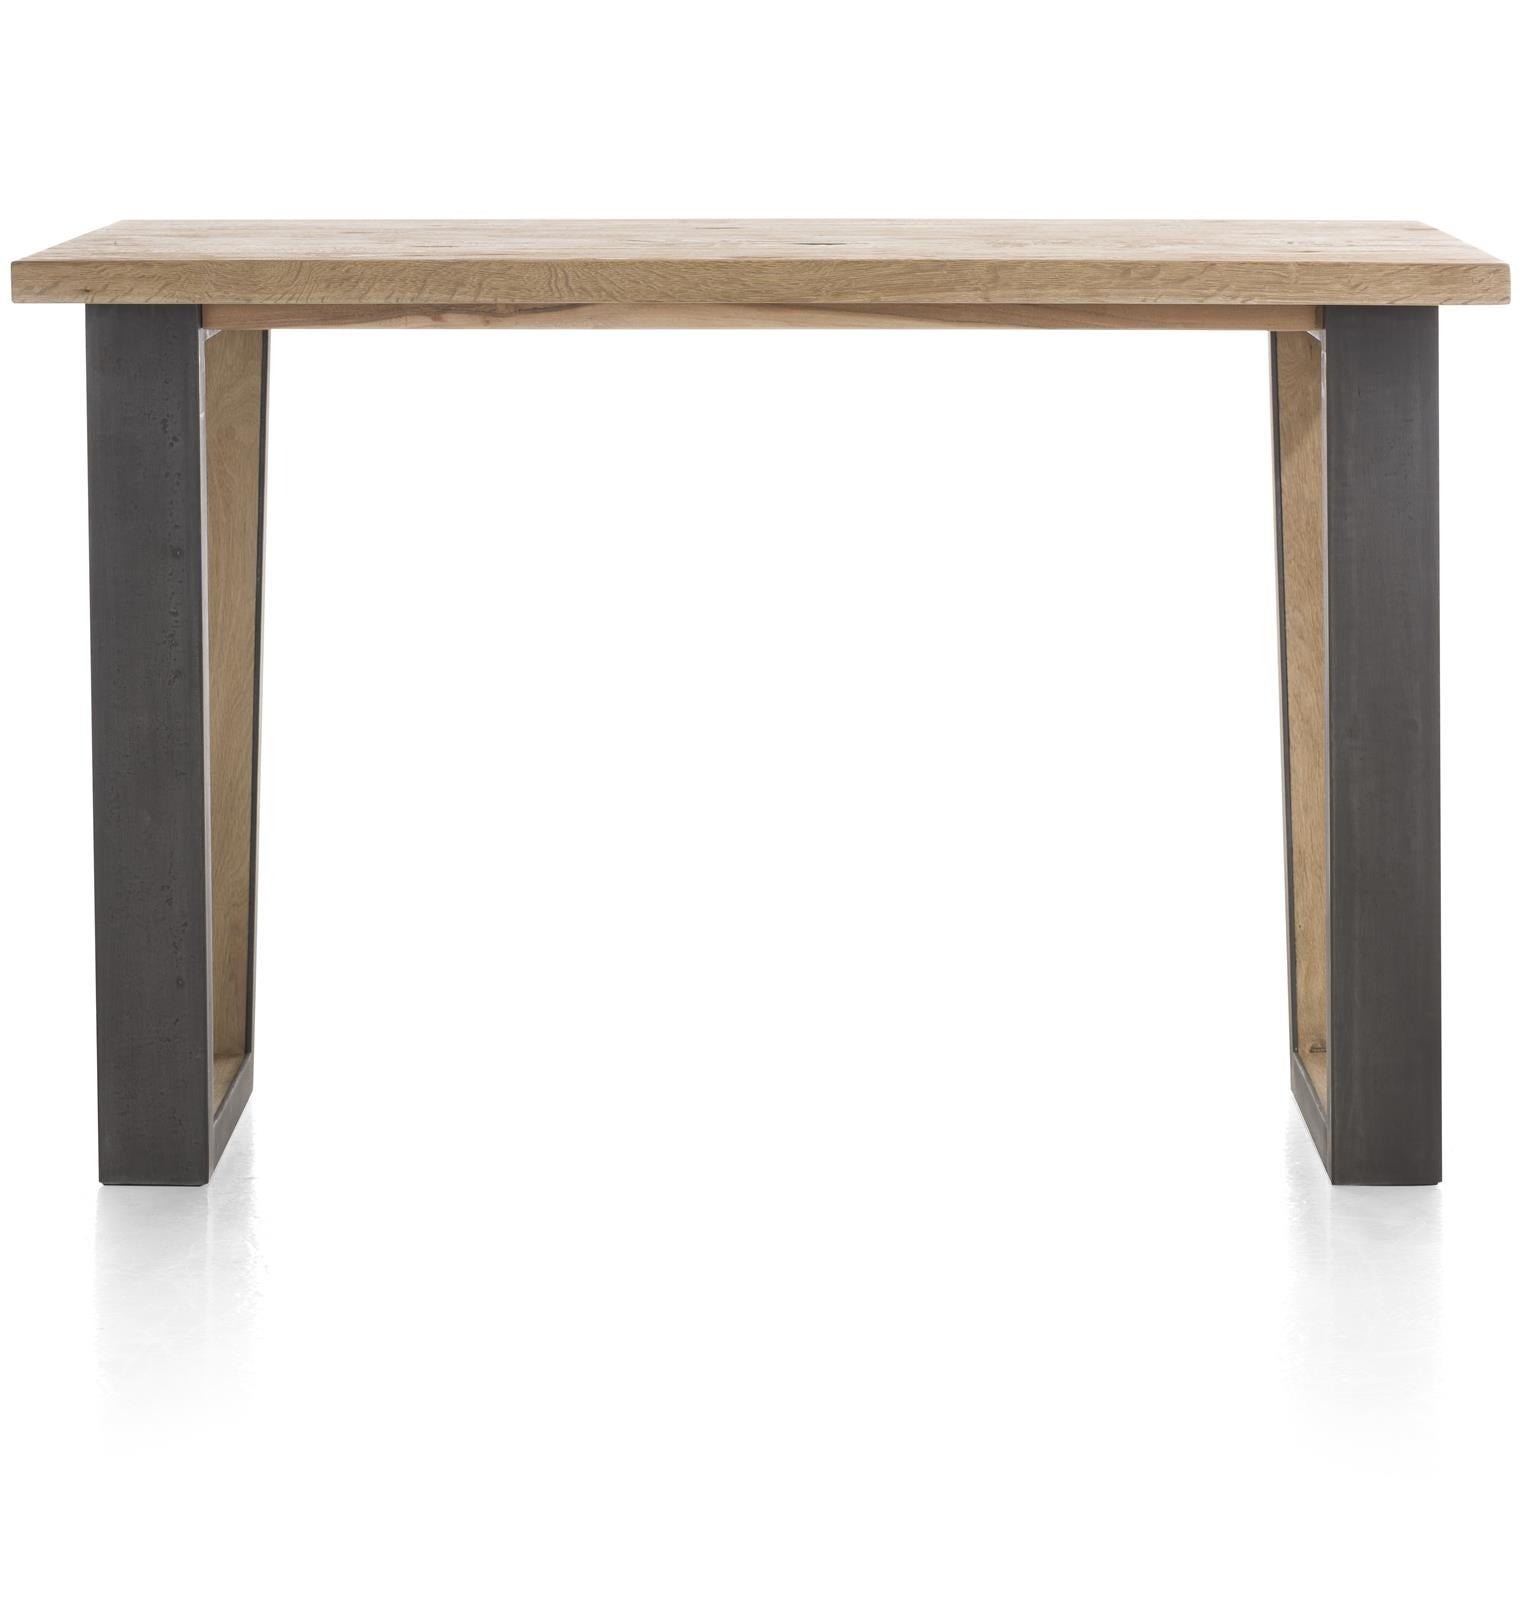 Habufa Metalox Bar Tables in Oak